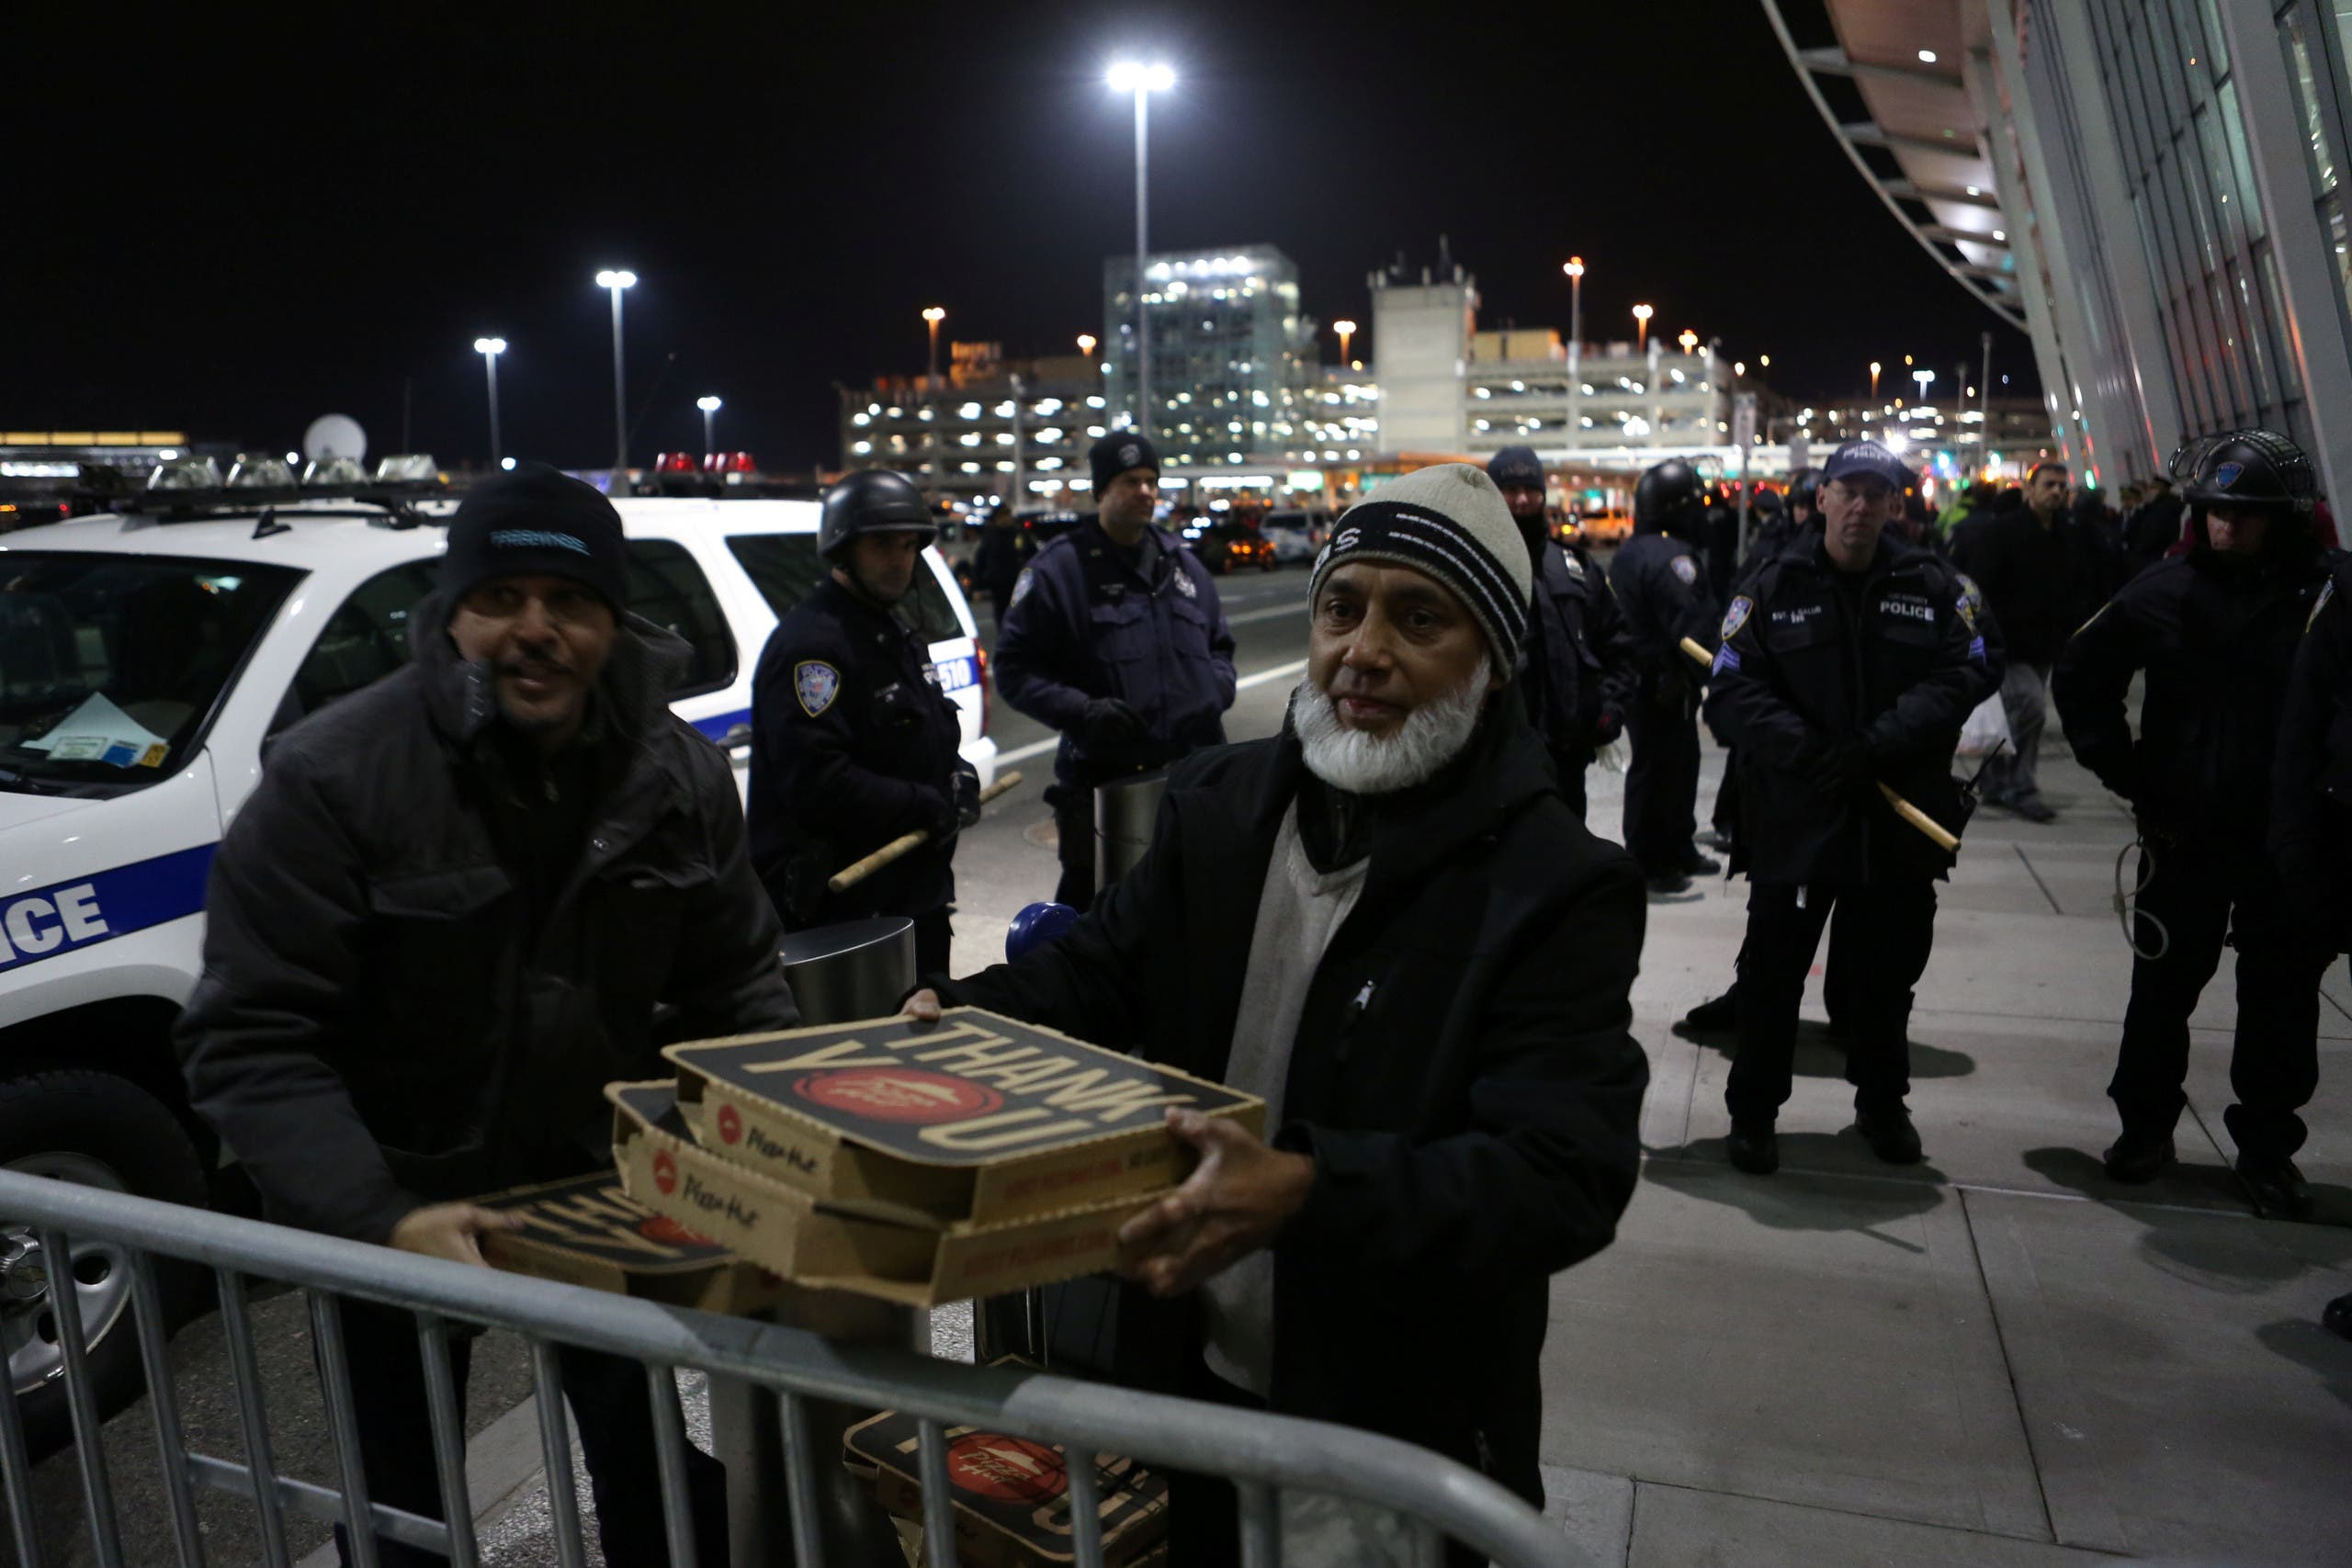 A man gives pizza to protesters chanting slogans in opposition to U.S. President Donald Trump's ban on immigration and travel outside Terminal 4 at JFK airport in Queens, New York City, New York, U.S. January 28, 2017. REUTERS/Joe Penney